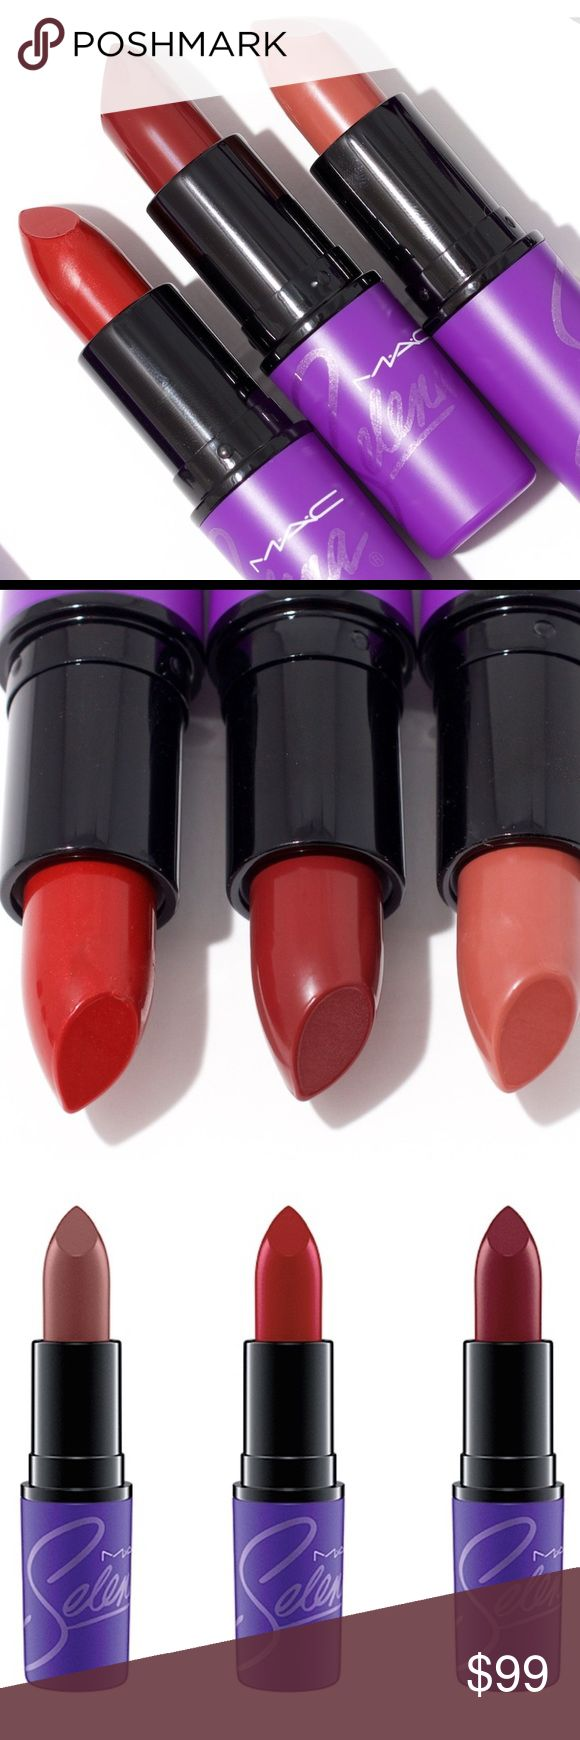 BNIB MAC Selena Lipsticks includes all 3 lipsticks from the MAC selena limited edition collection. sold out on MAC's website. these are purchased directly from MAC and are brand new in box and unopened. NO TRADES. accepting reasonable offers through the offer button MAC Cosmetics Makeup Lipstick